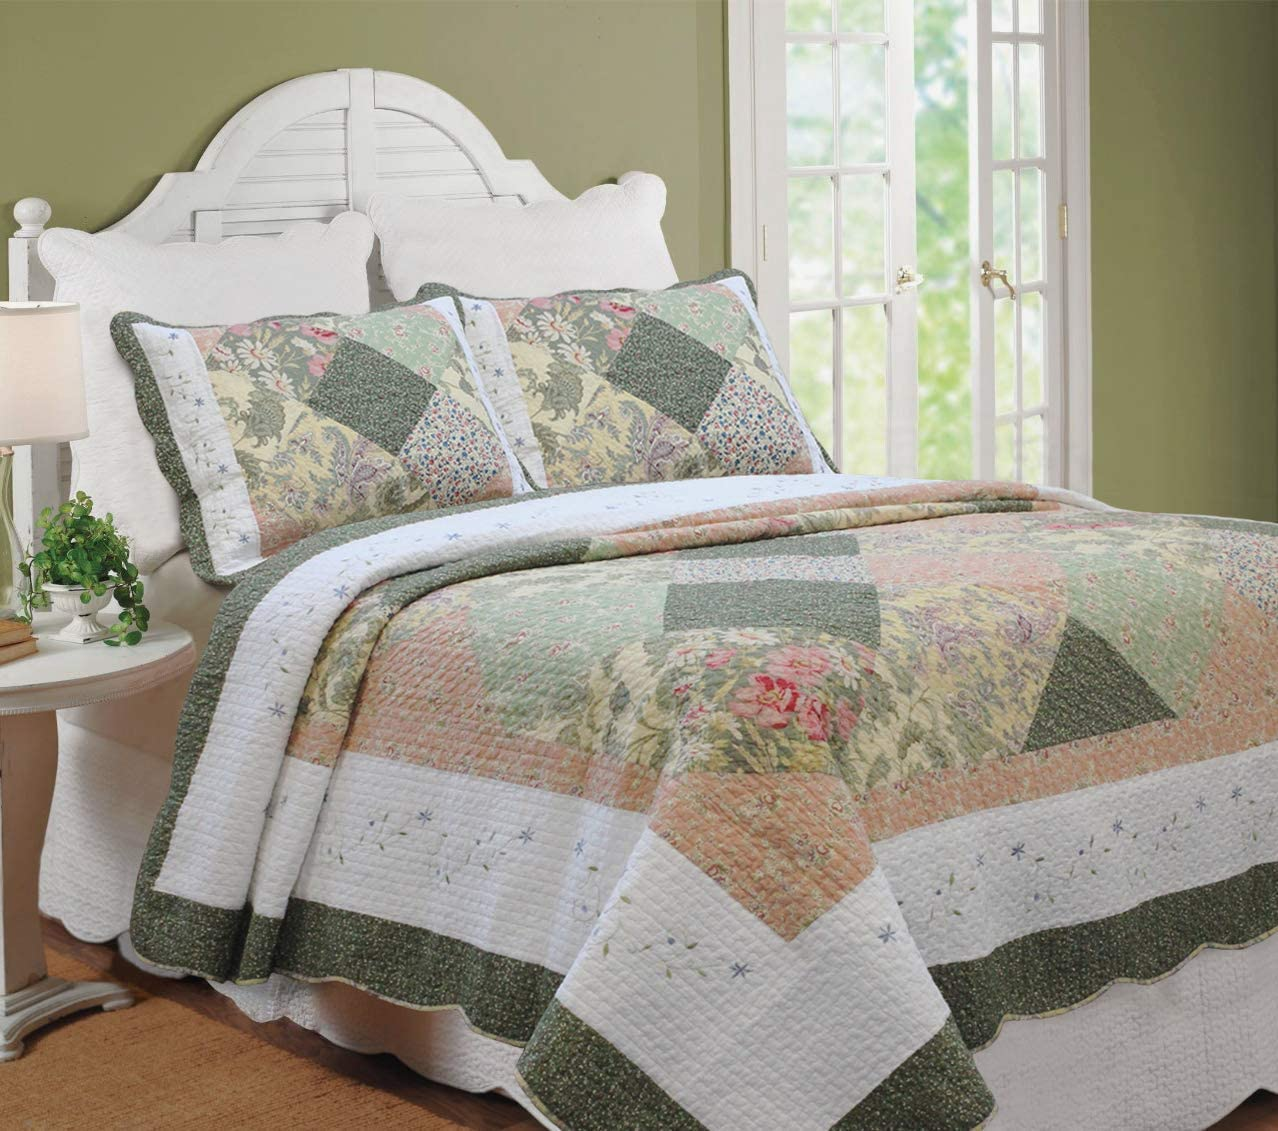 Cozy Line Home Fashions Floral Real Patchwork Olive Green Pink Scalloped Edge Country 100% Cotton Quilt Bedding Set, Reversible Coverlet Bedspread for Women (Williamsburg, Queen - 3 Piece)